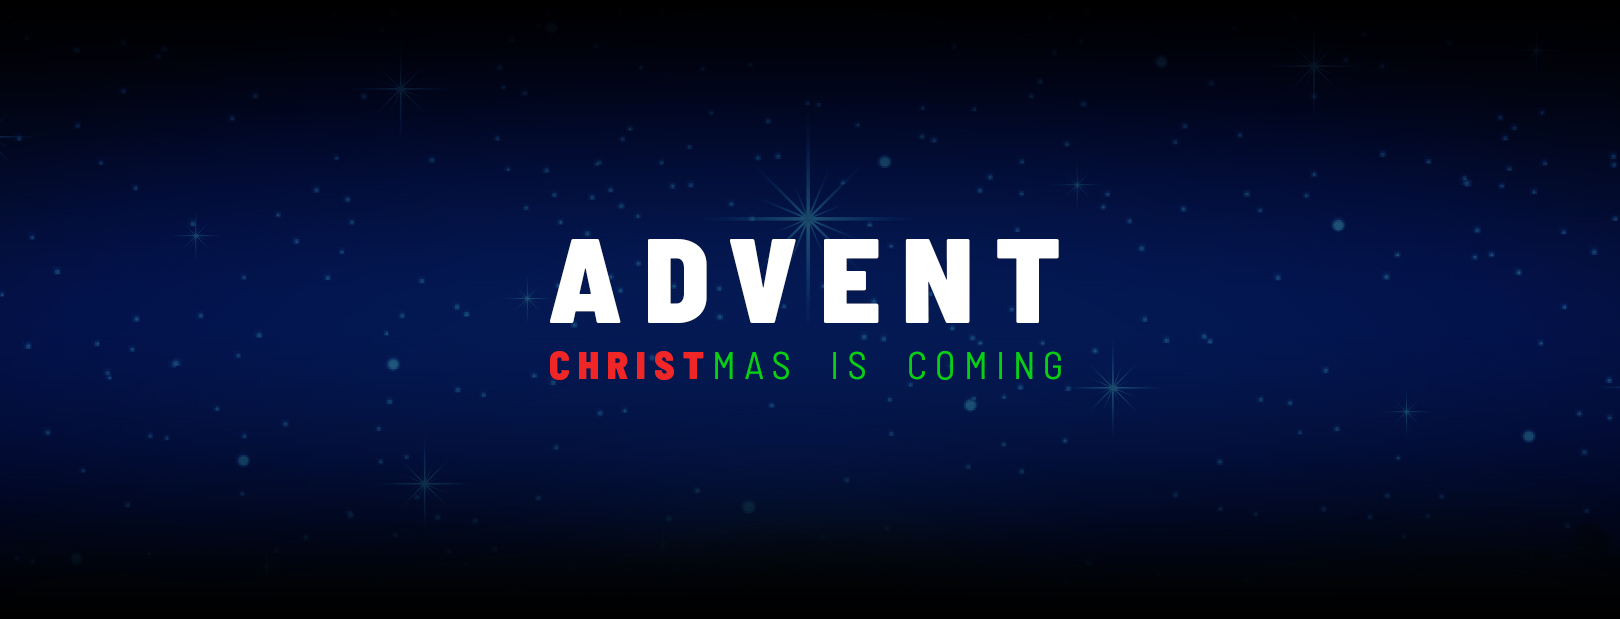 advent christmas is coming camden haven anglican church. Black Bedroom Furniture Sets. Home Design Ideas